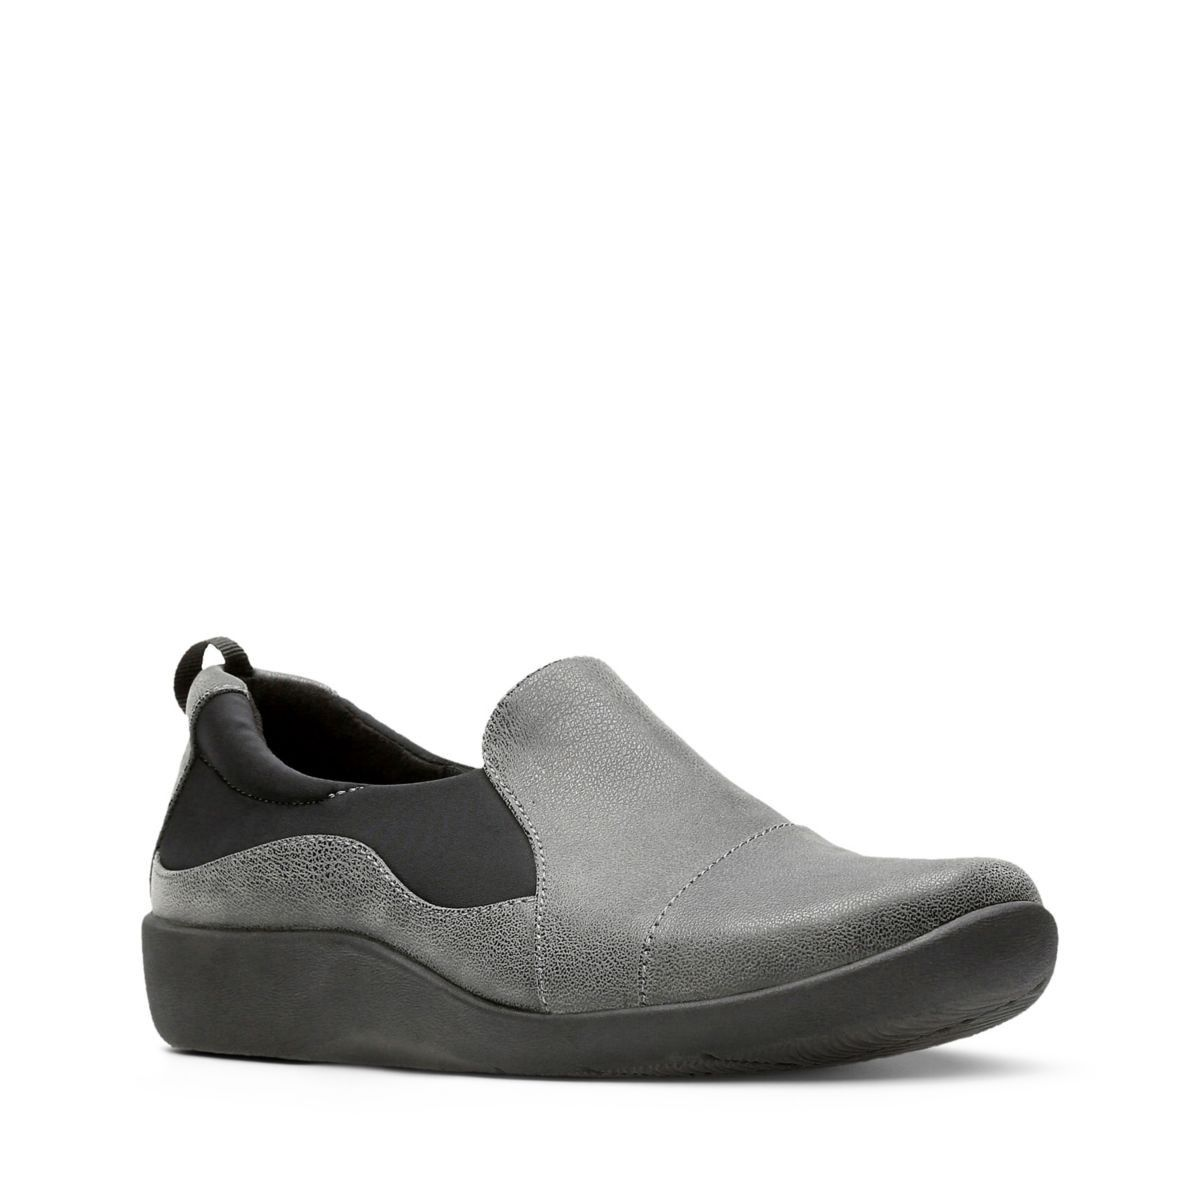 2841f609d19 Clarks Sillian Paz - Womens Shoes Grey 9.5 E (Wide) Out Of Stock Gray